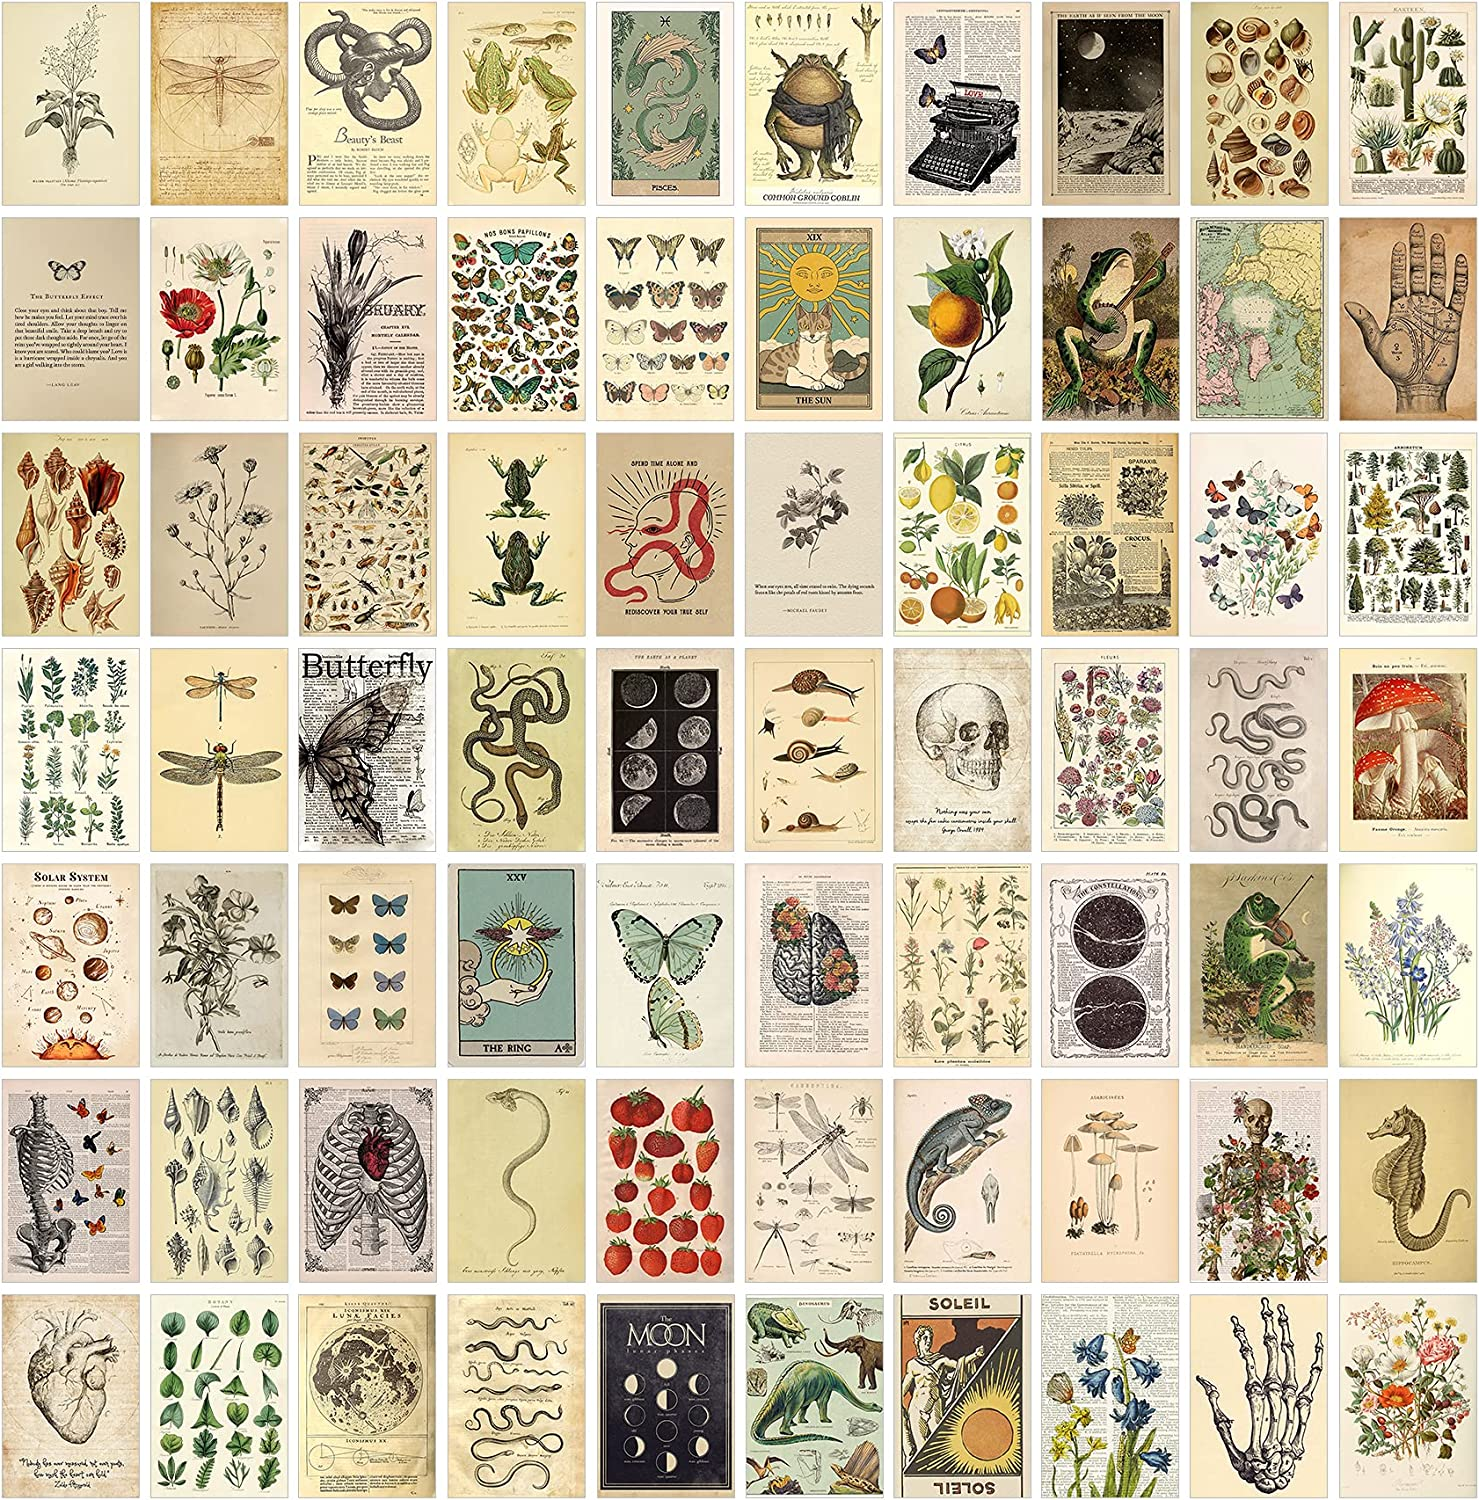 KOSKIMER 70PCS Vintage Wall Collage Kit, 70 Set 4x6 Inch, Posters for Room Aesthetic Vintage, Picture Collage kit, Trendy Posters for Room Aesthetic, Vintage Wall Decor for Teens, Vintage Wall Art